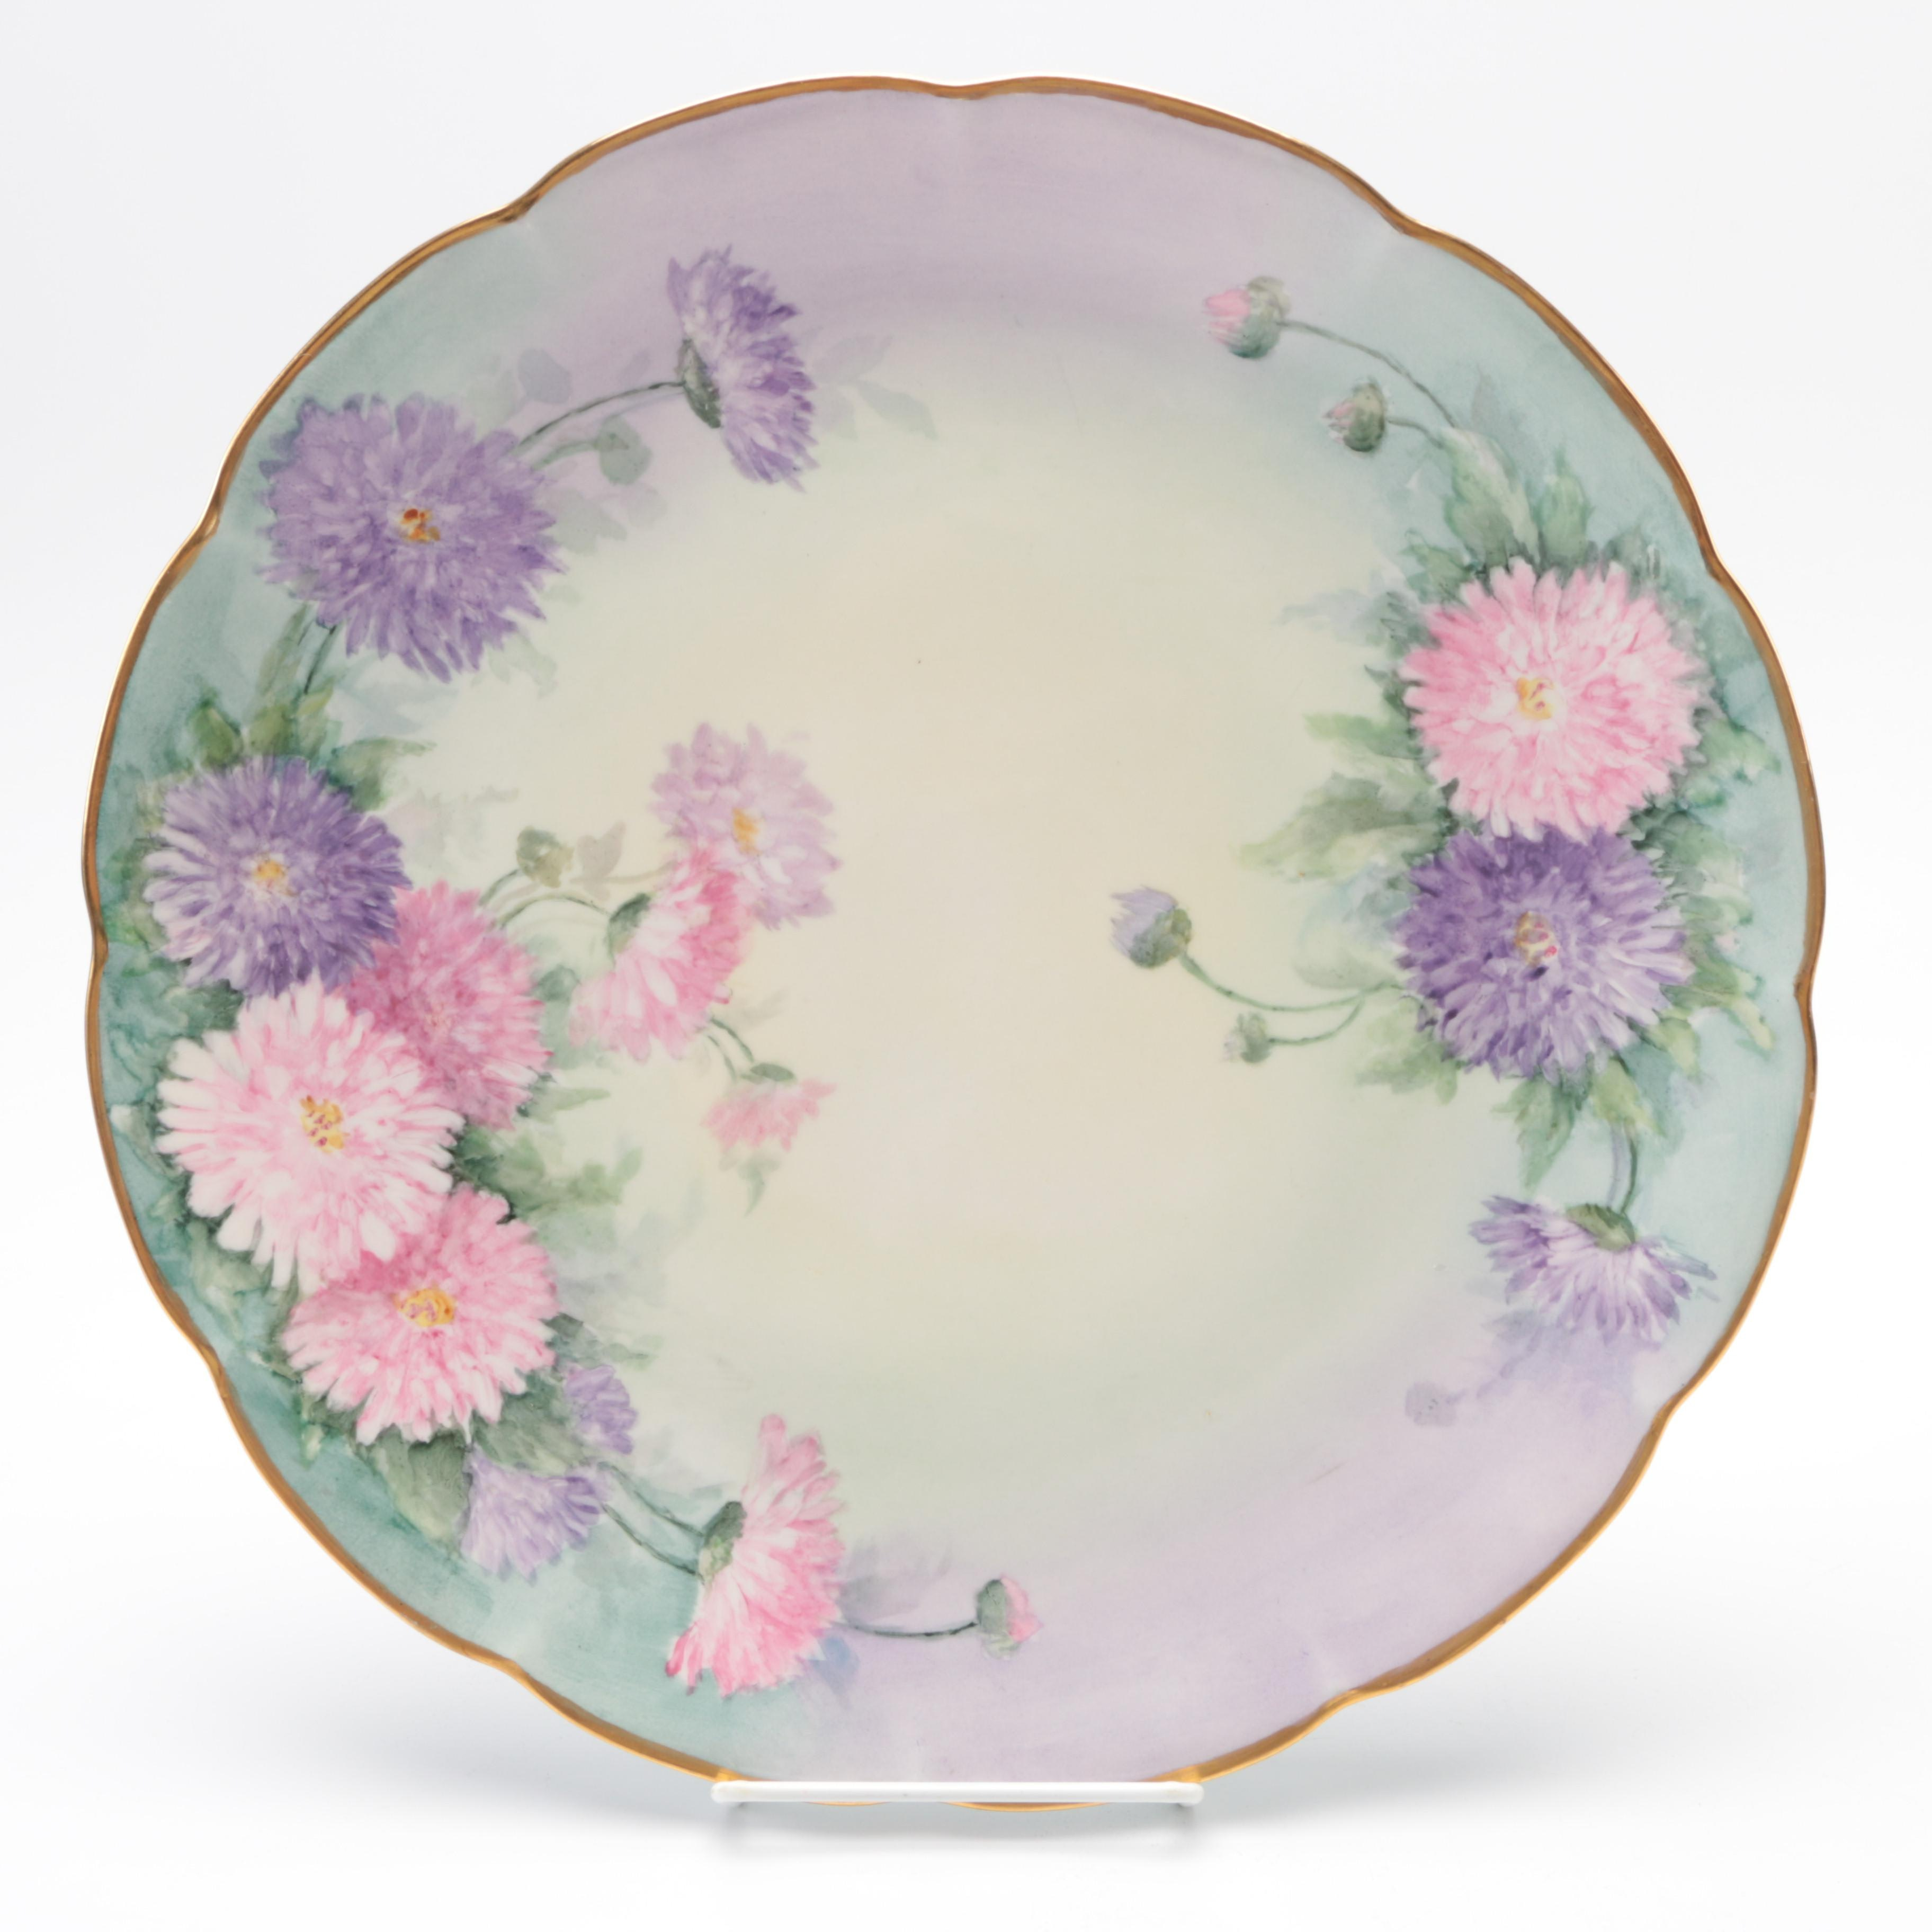 Porcelain Hobbyist Hand-Painted  Floral Plate